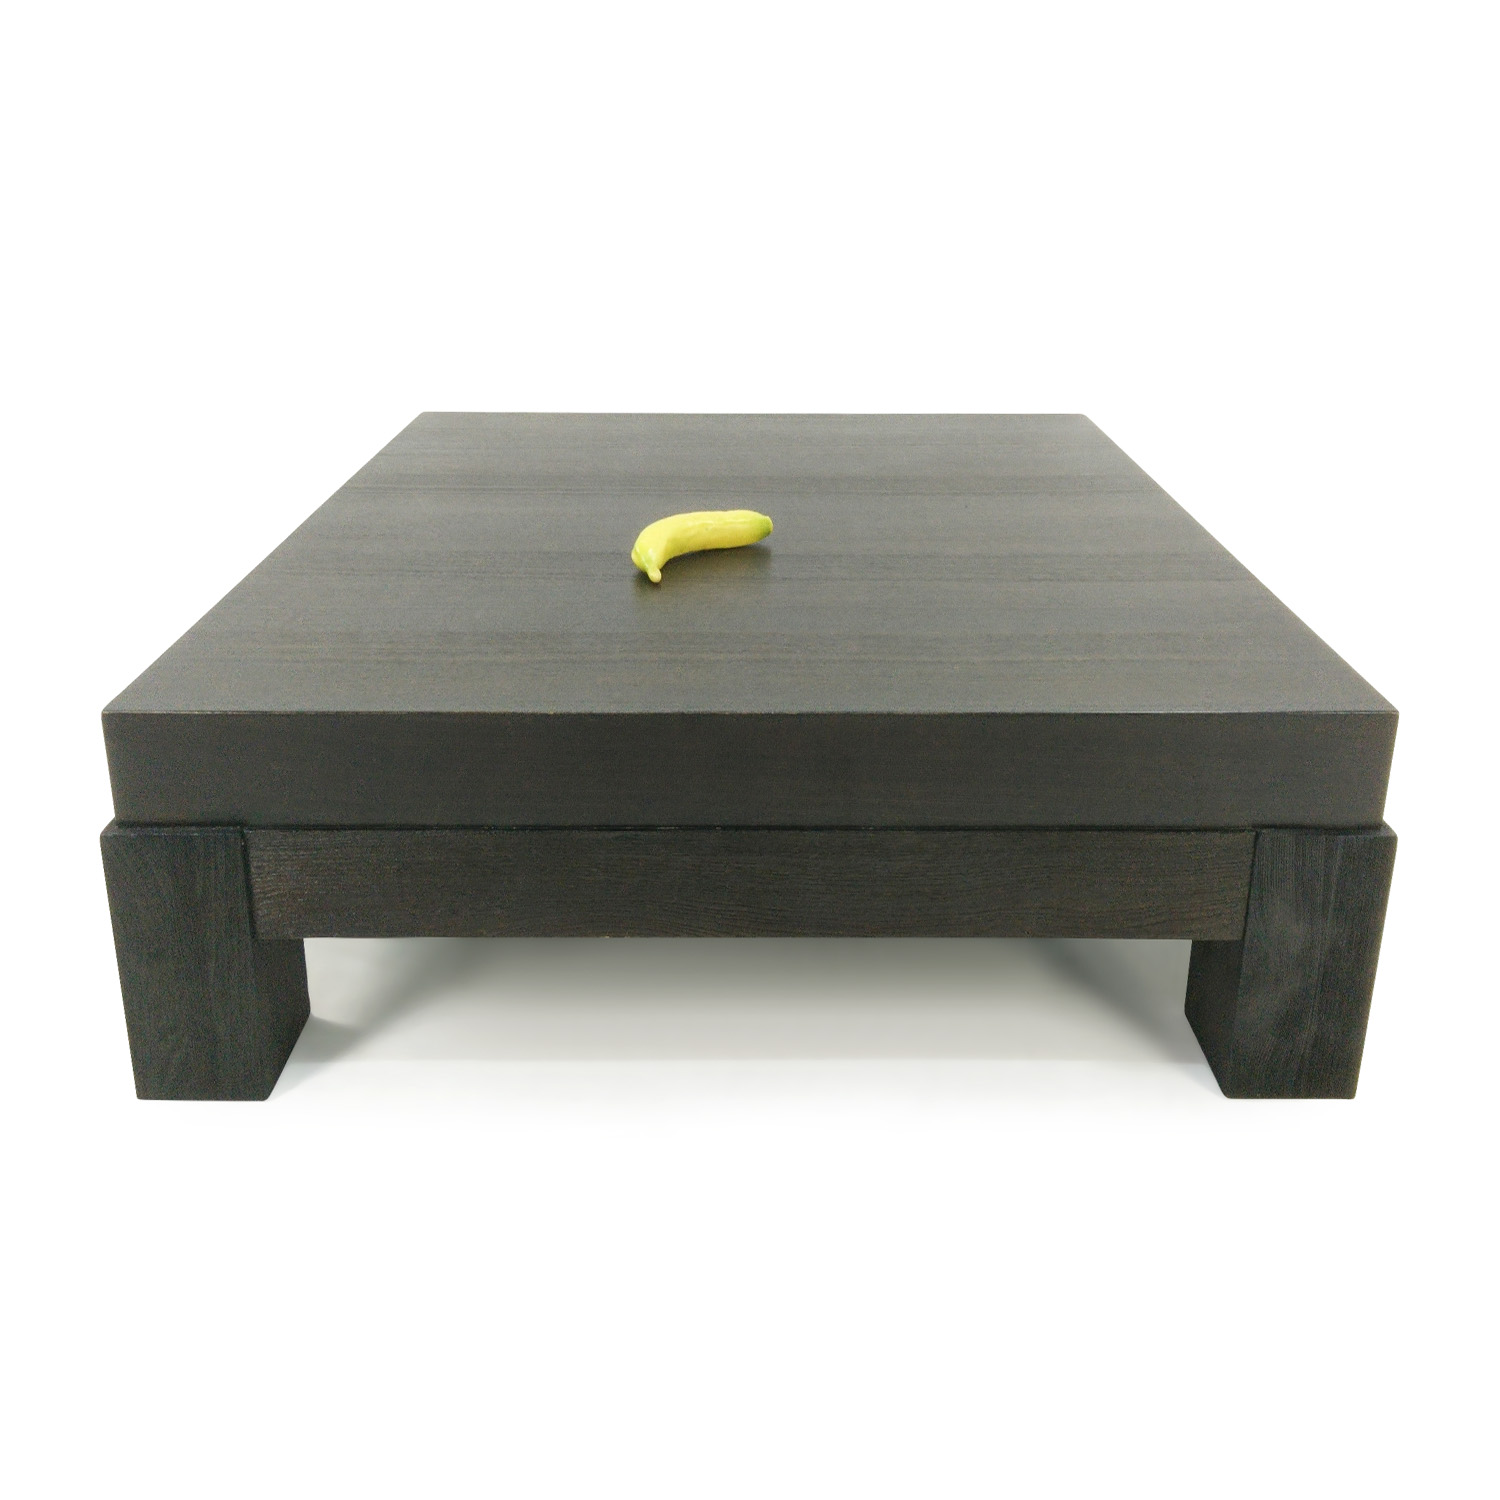 80% off - crate and barrel crate & barrel square coffee table / tables